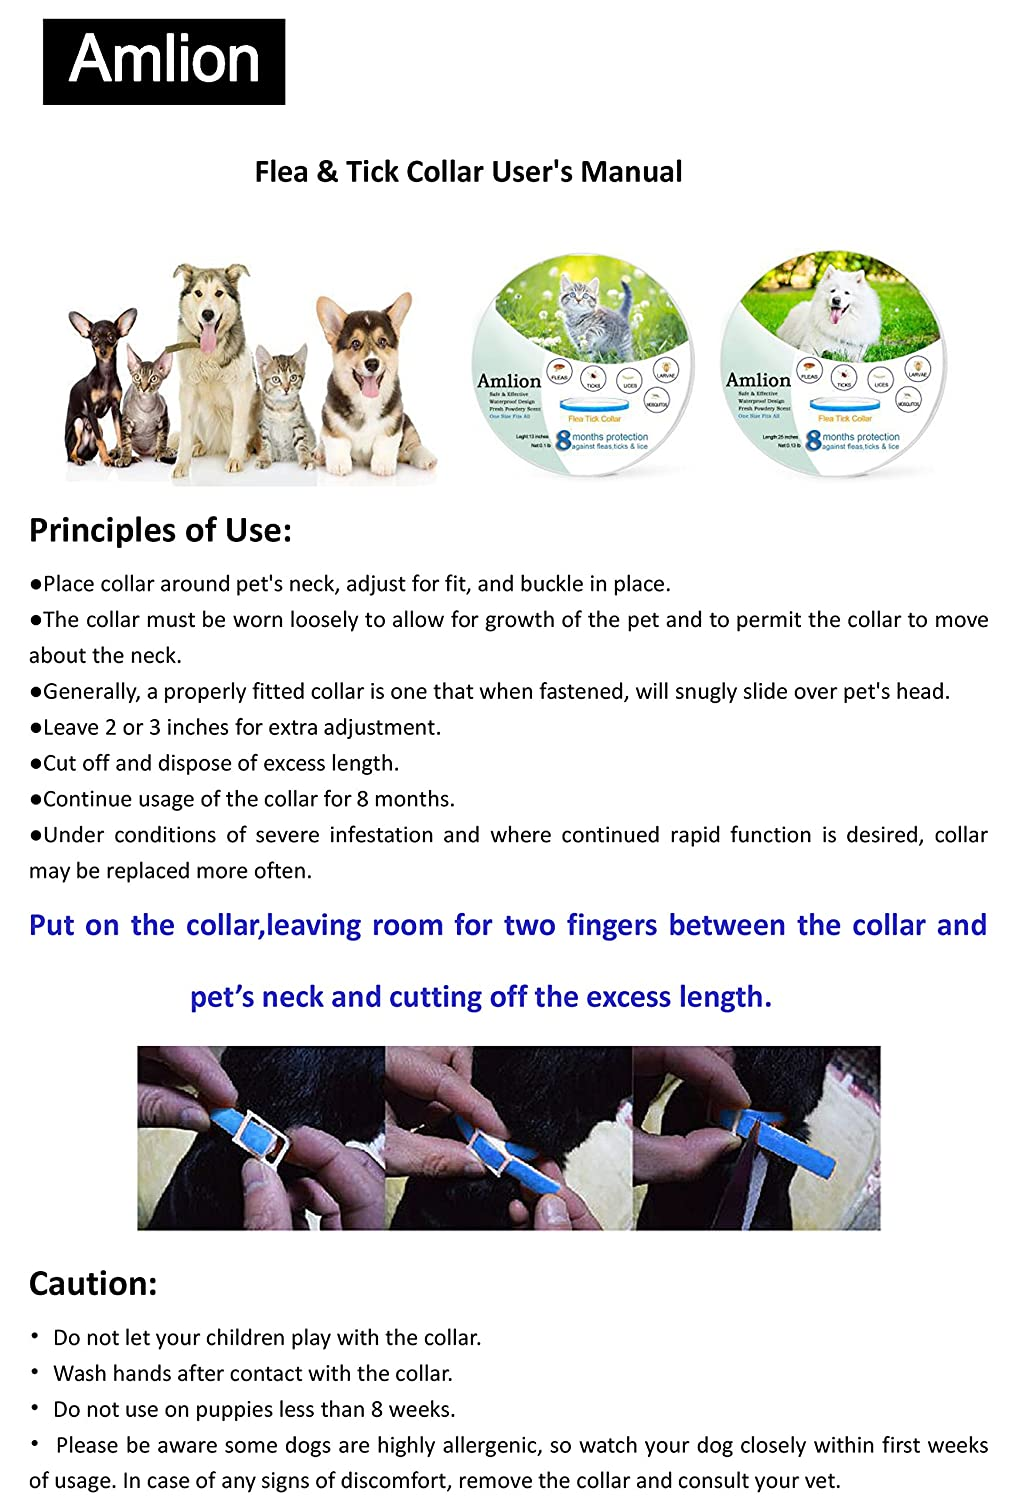 Flea and Tick Collar for Dogs,Cats-Prevents,Kills, Repels,Fleas, Ticks and Lice,Water Resistant,8 Months Protection,One Size Fits All